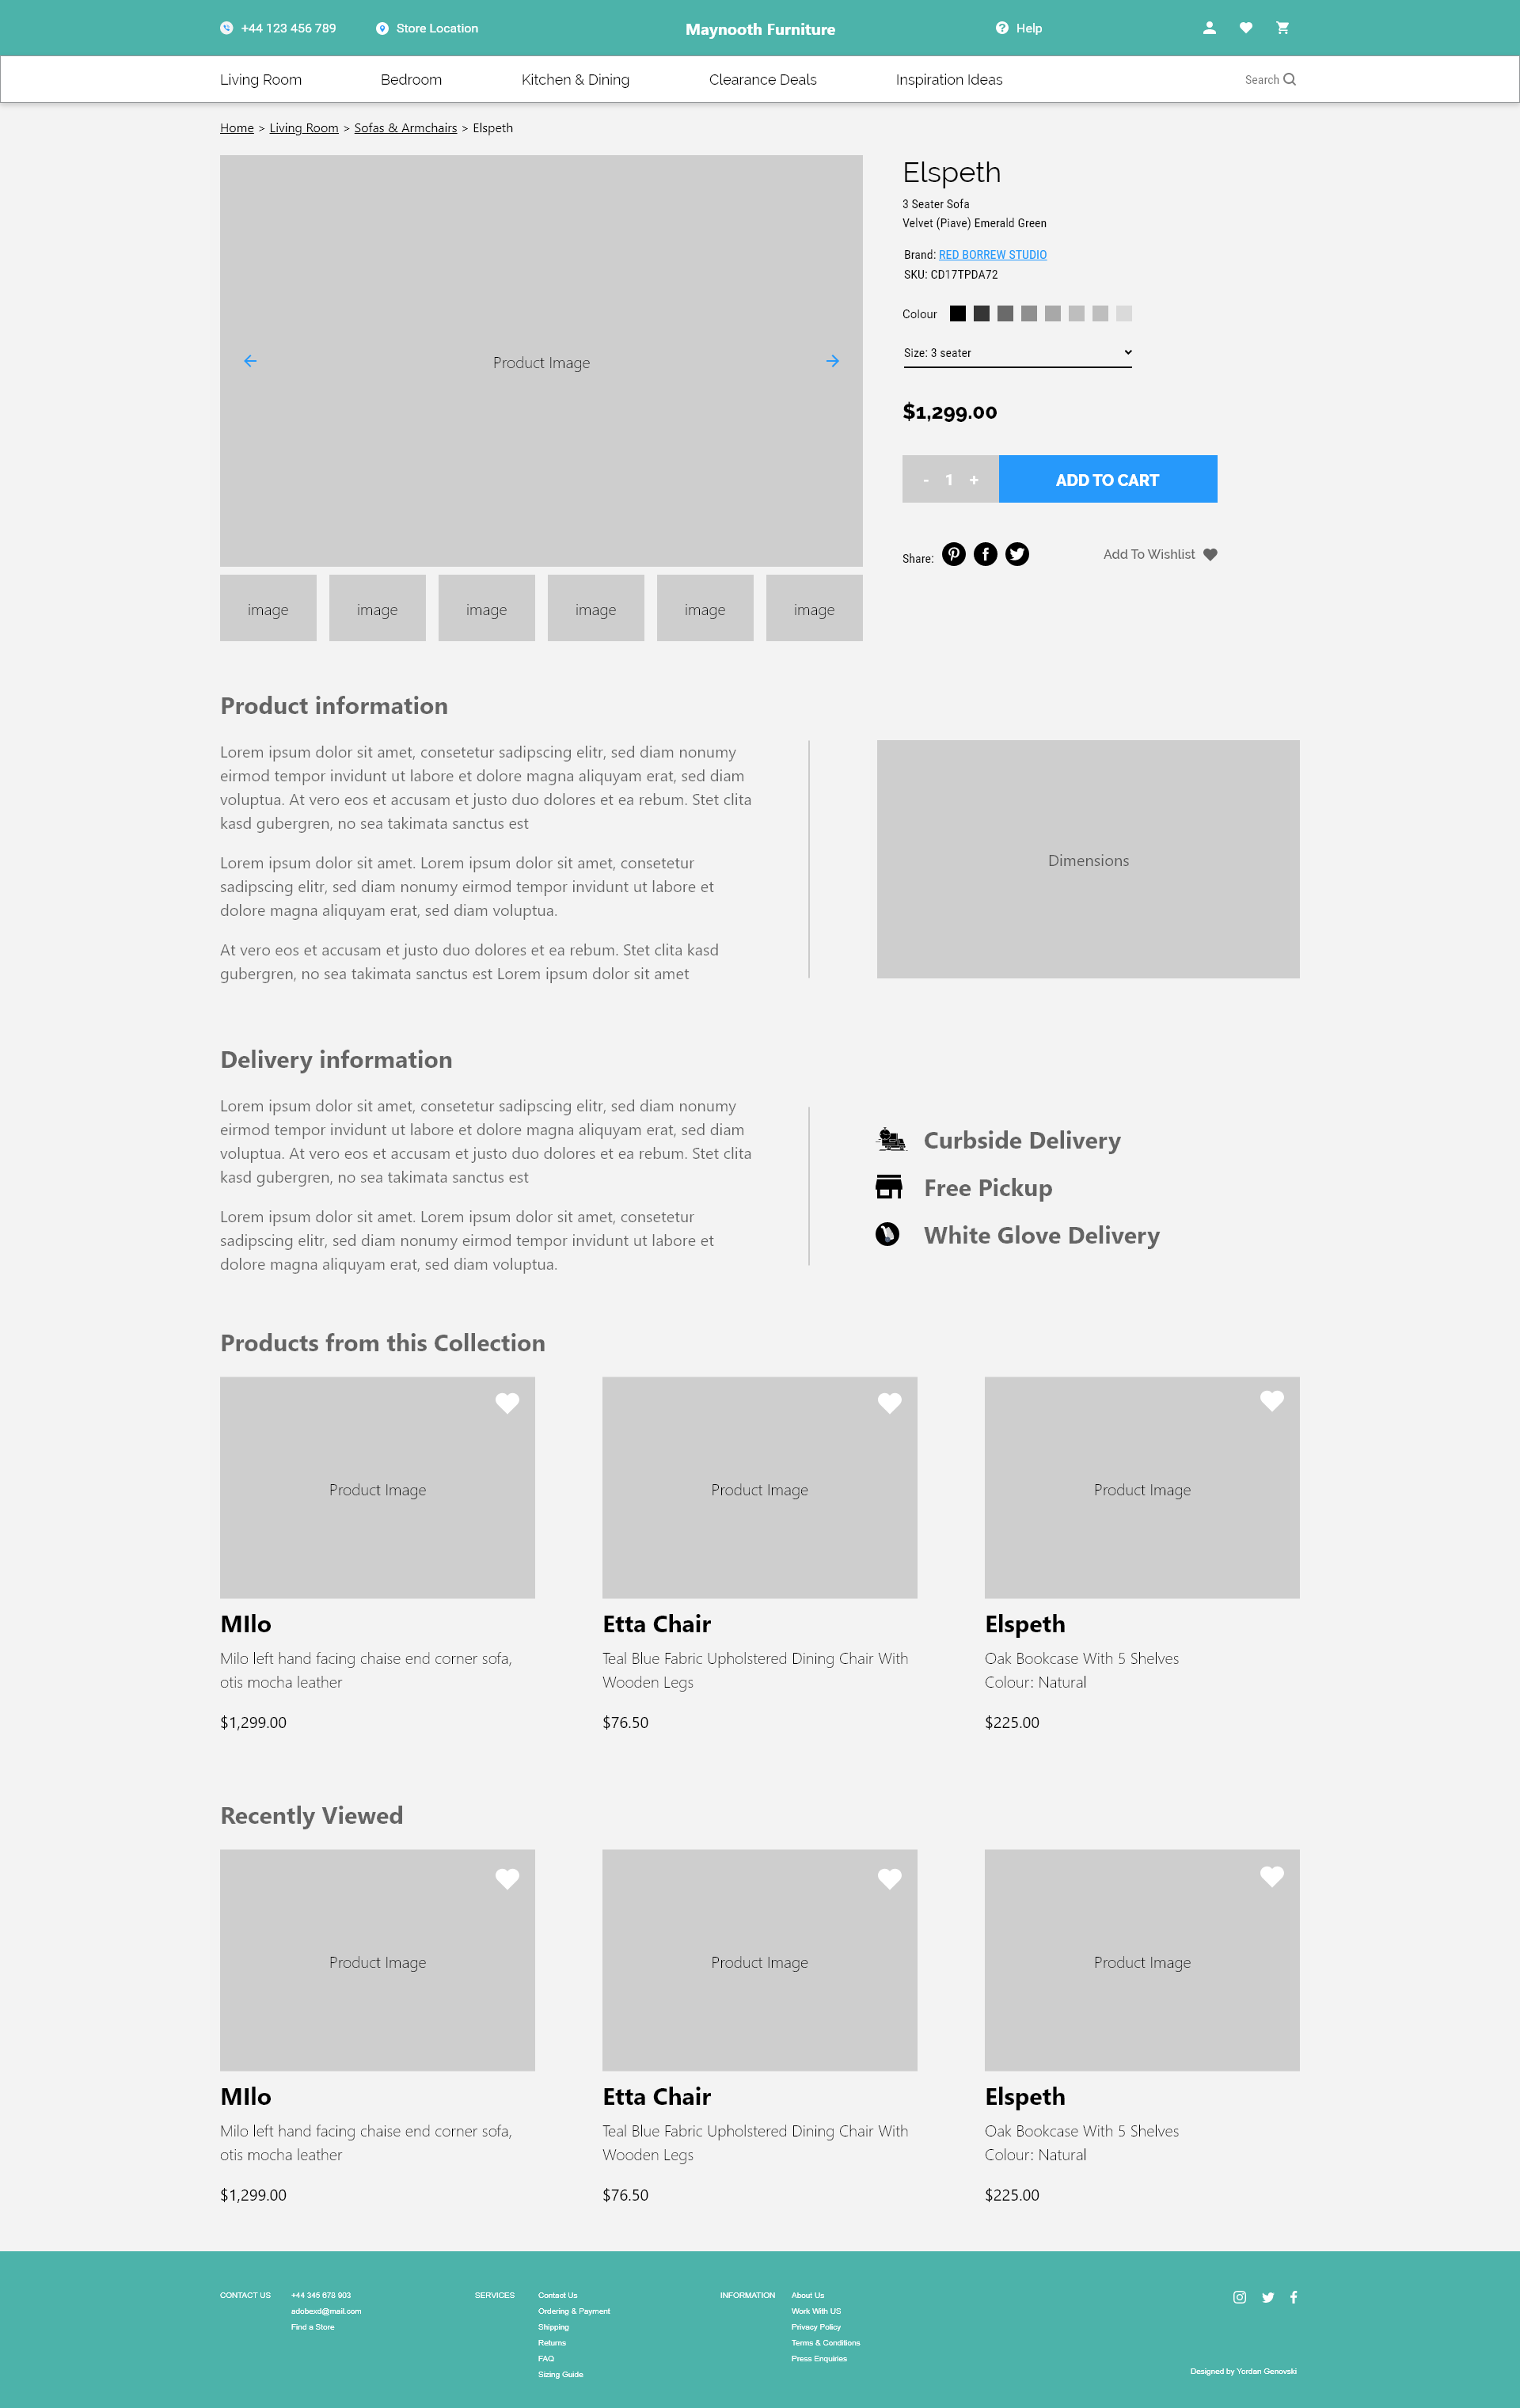 ux design product page maynooth